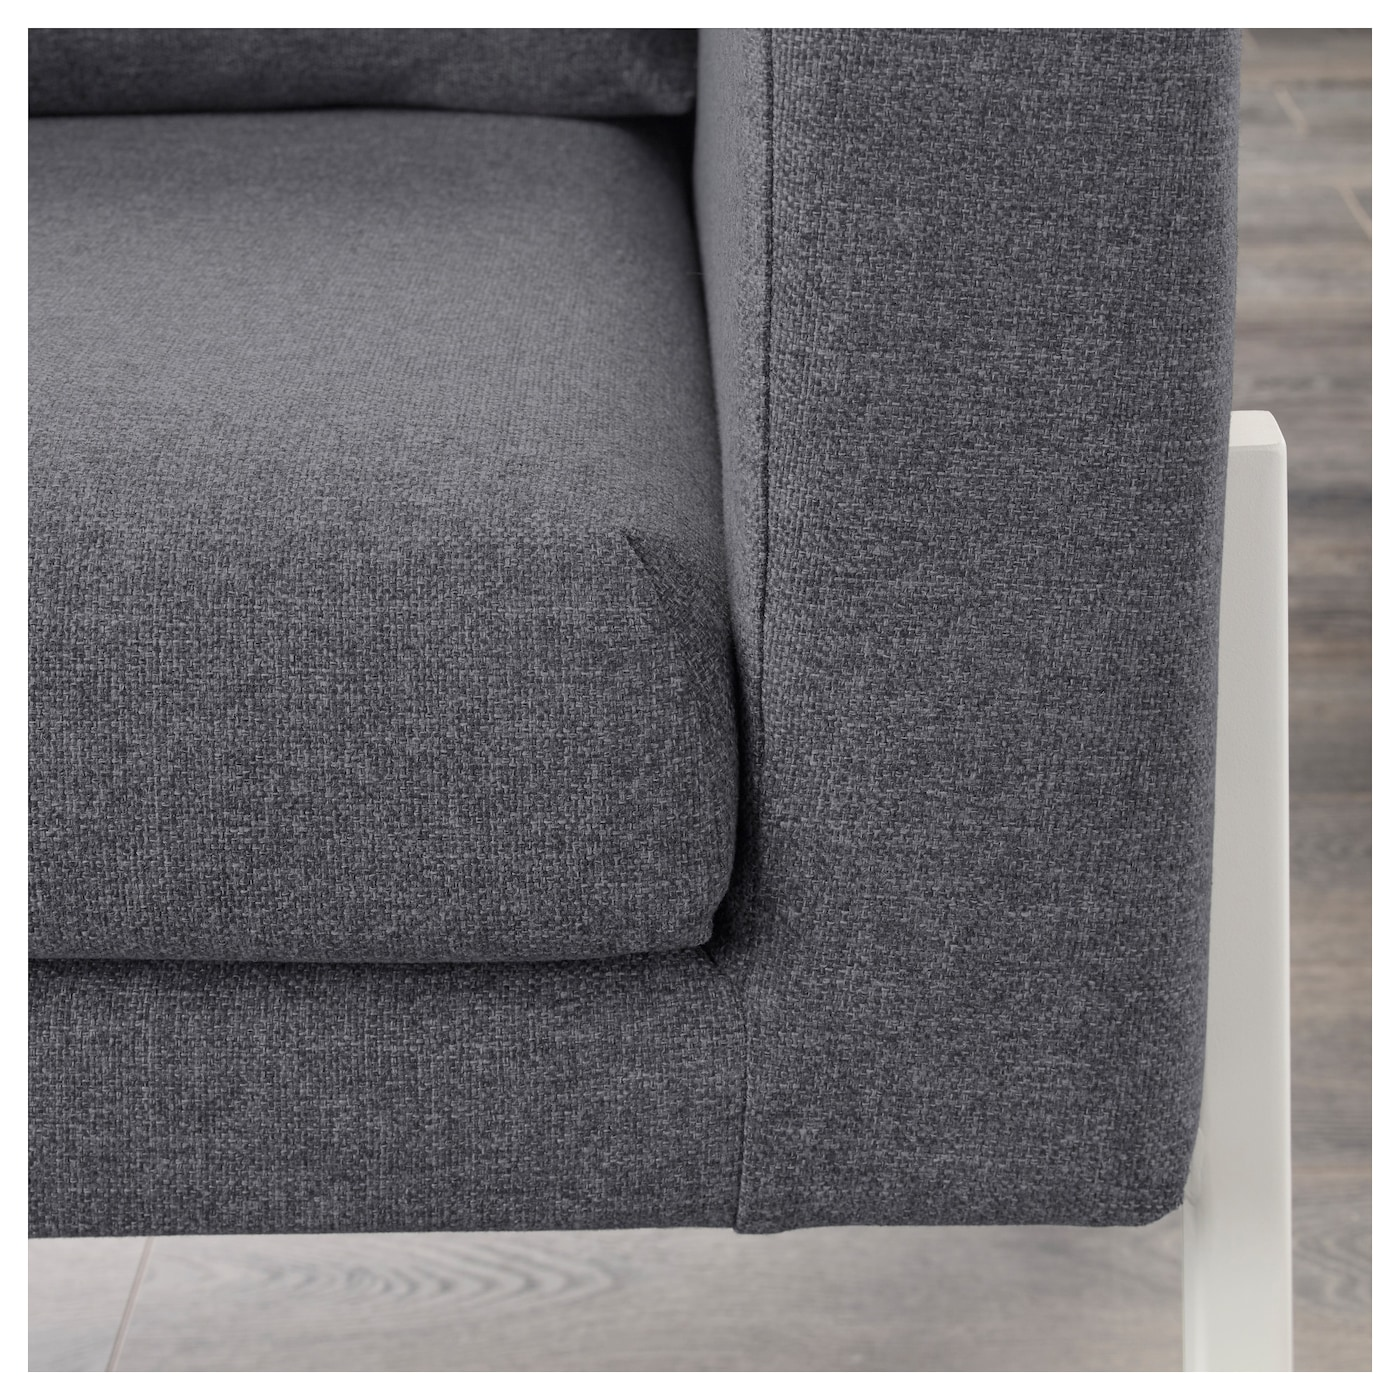 IKEA KOARP armchair The cover is easy to keep clean since it is removable and machine washable.